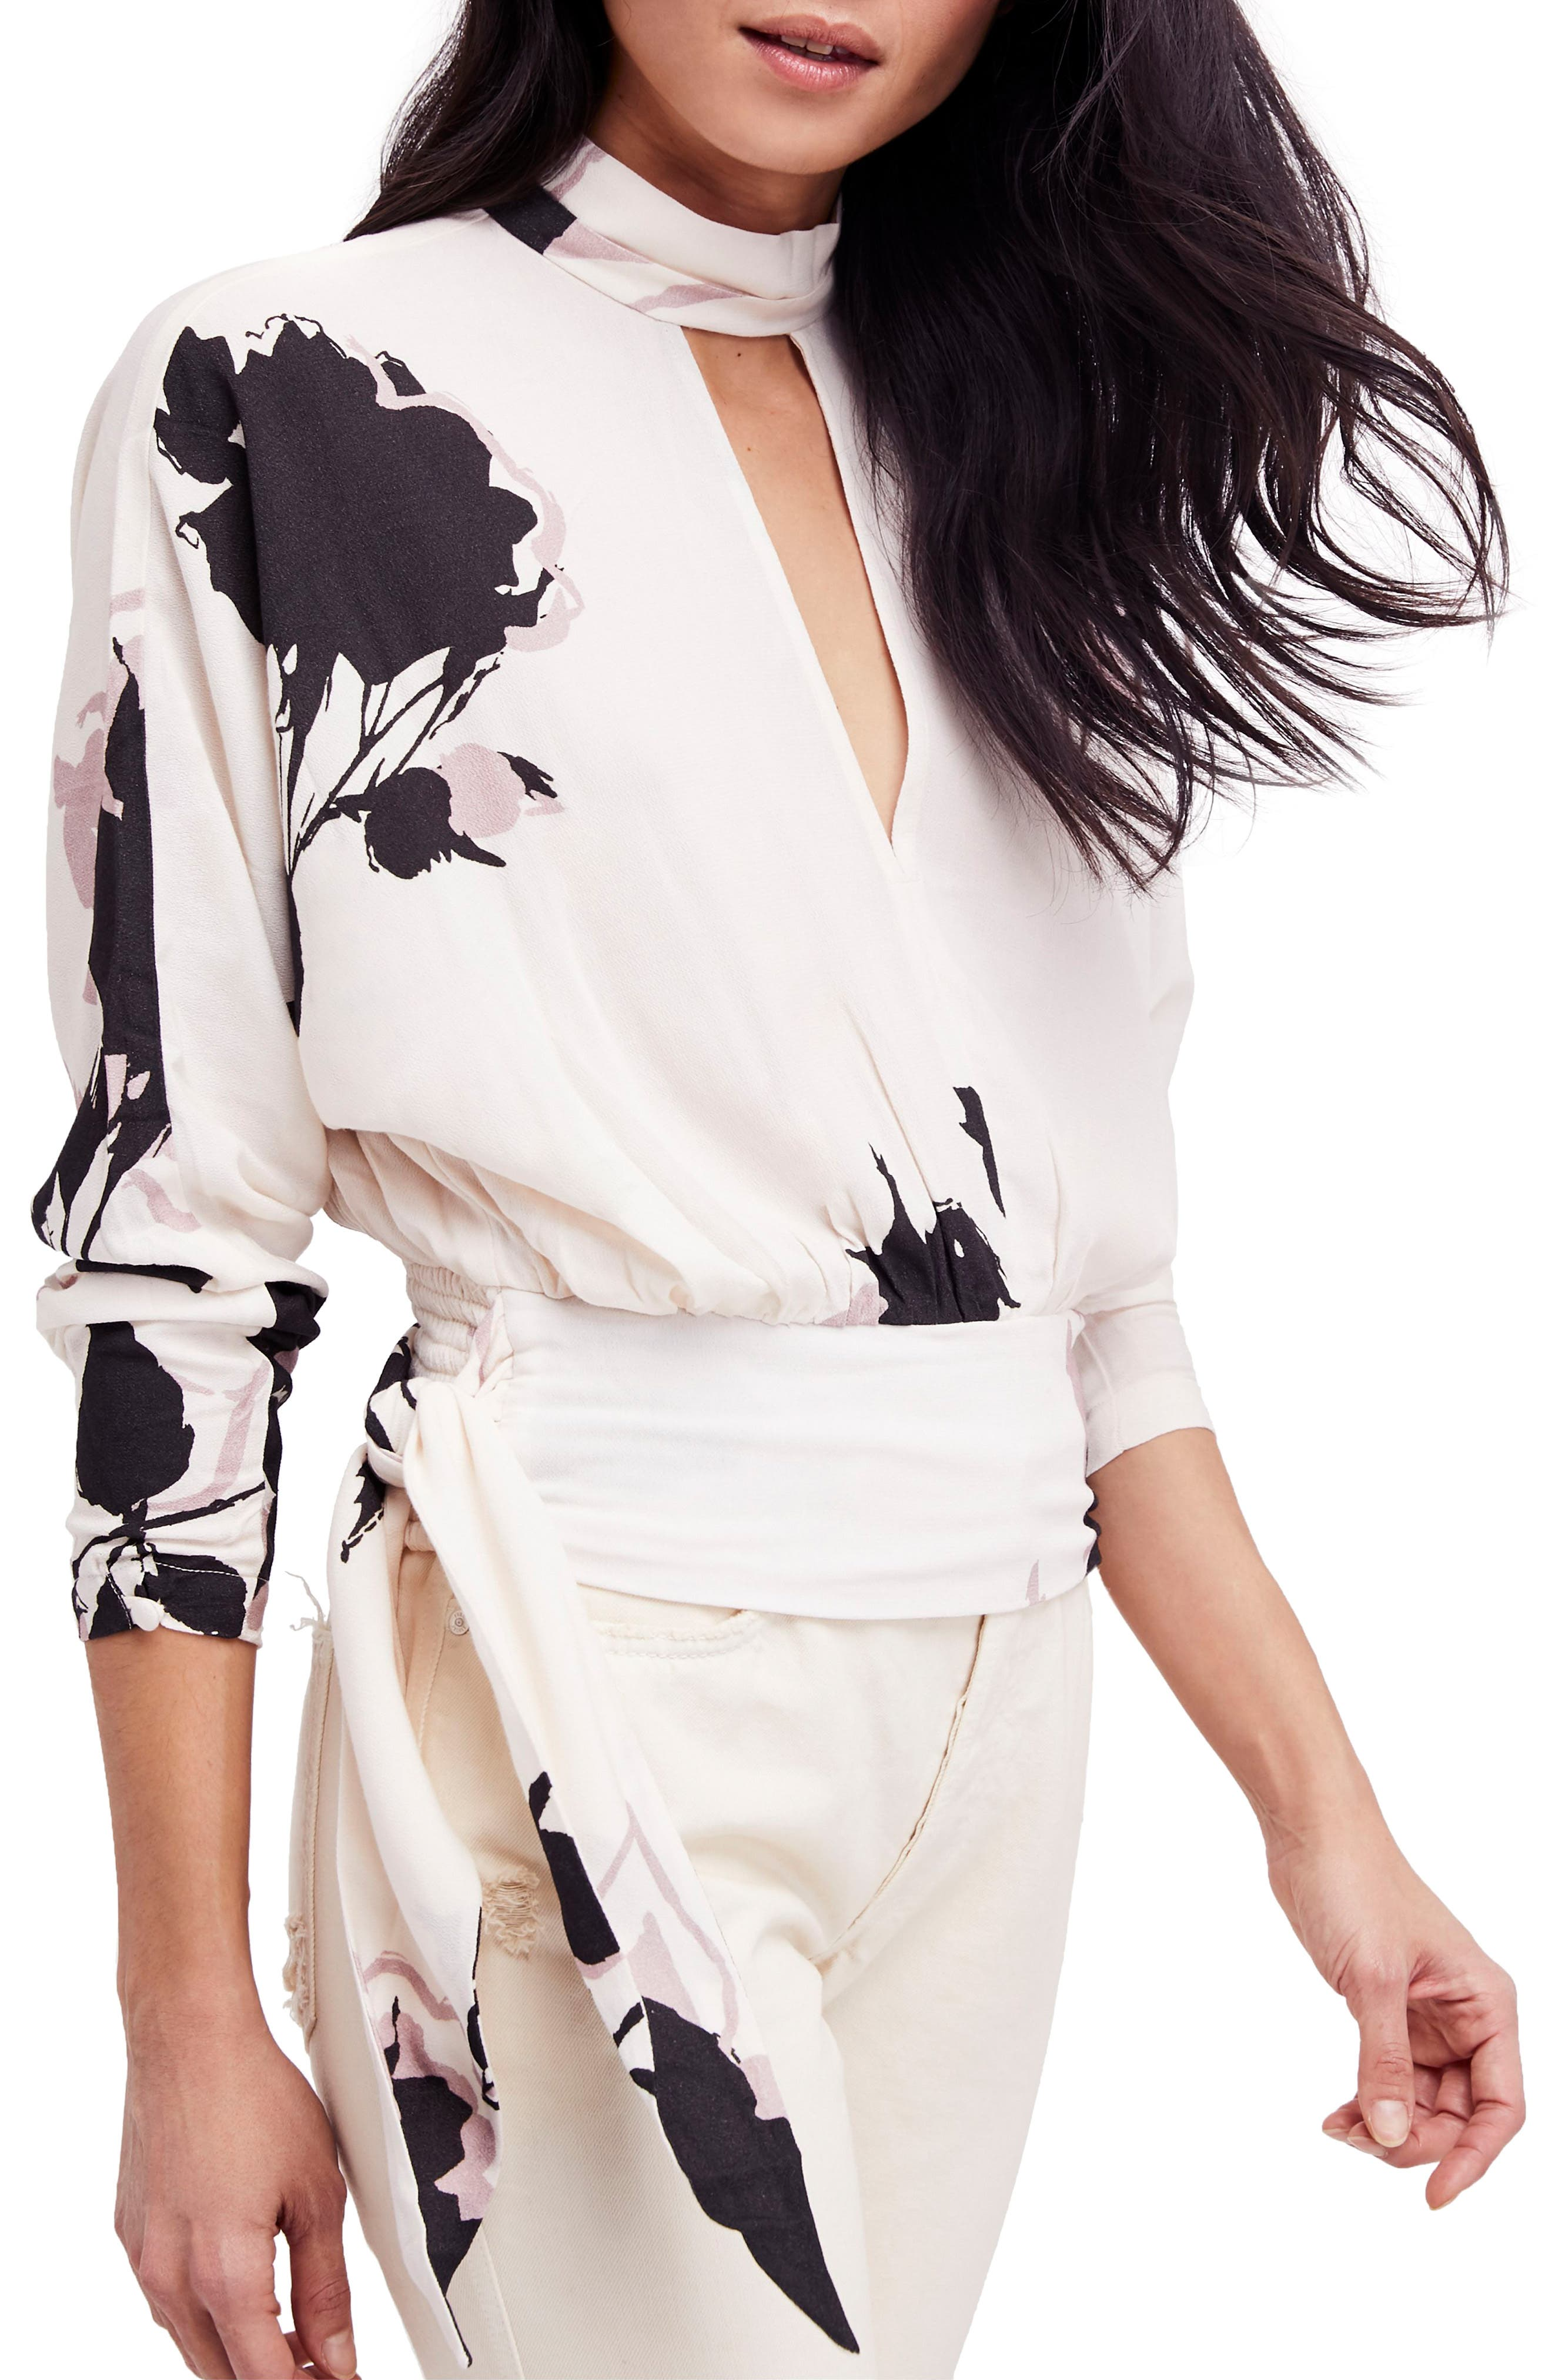 Say You Love Me Blouse,                         Main,                         color, Ivory